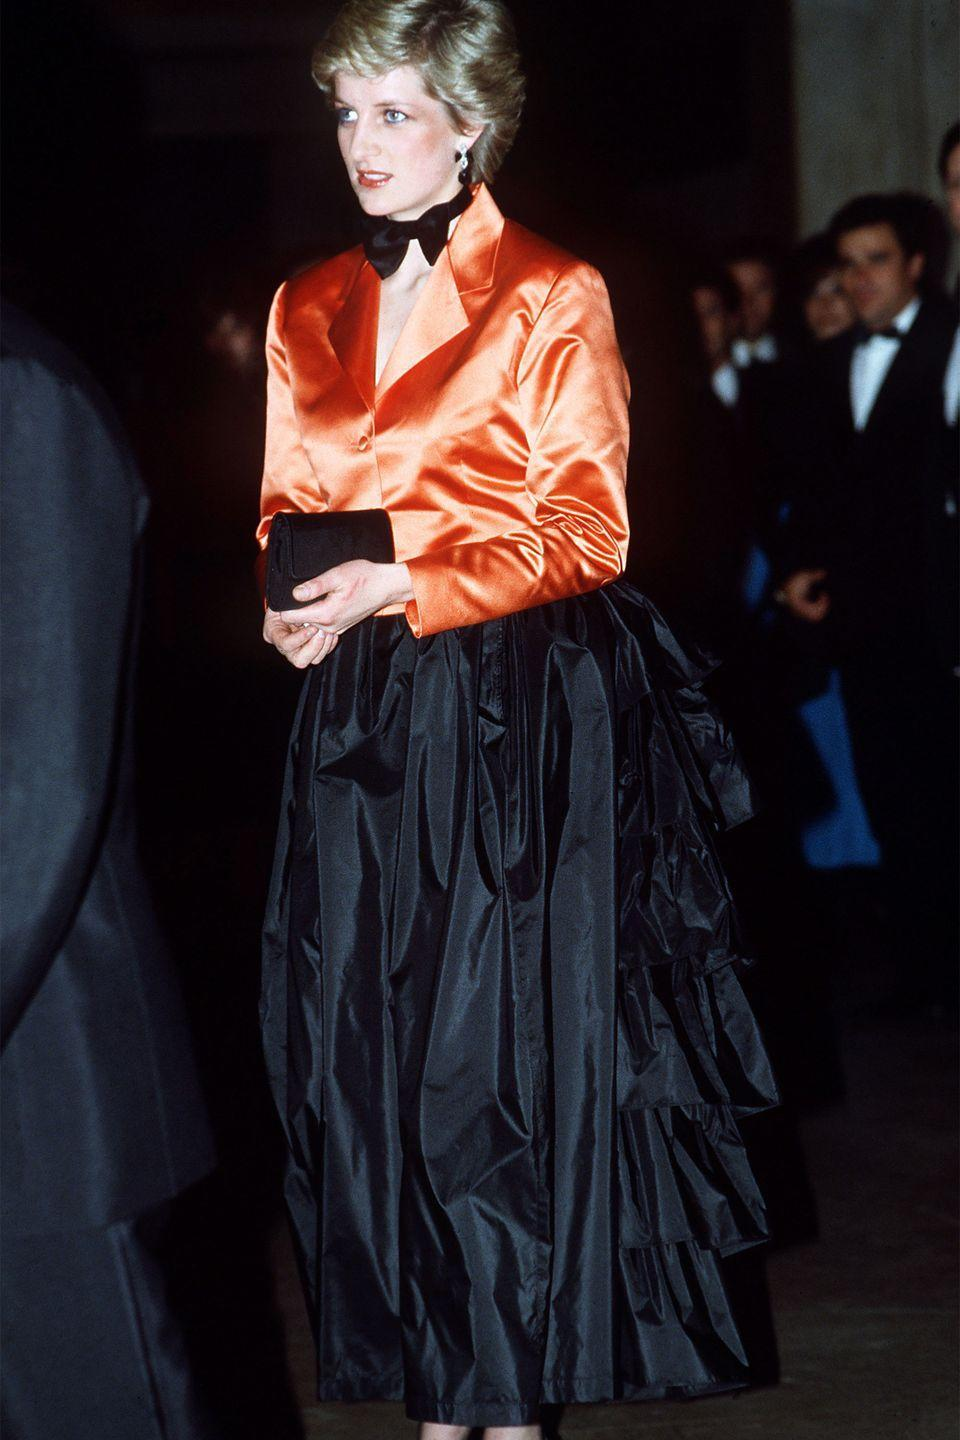 <p>In an orange jacket, black bow-tie and black evening skirt on an official visit to Lisbon, Portugal. </p>